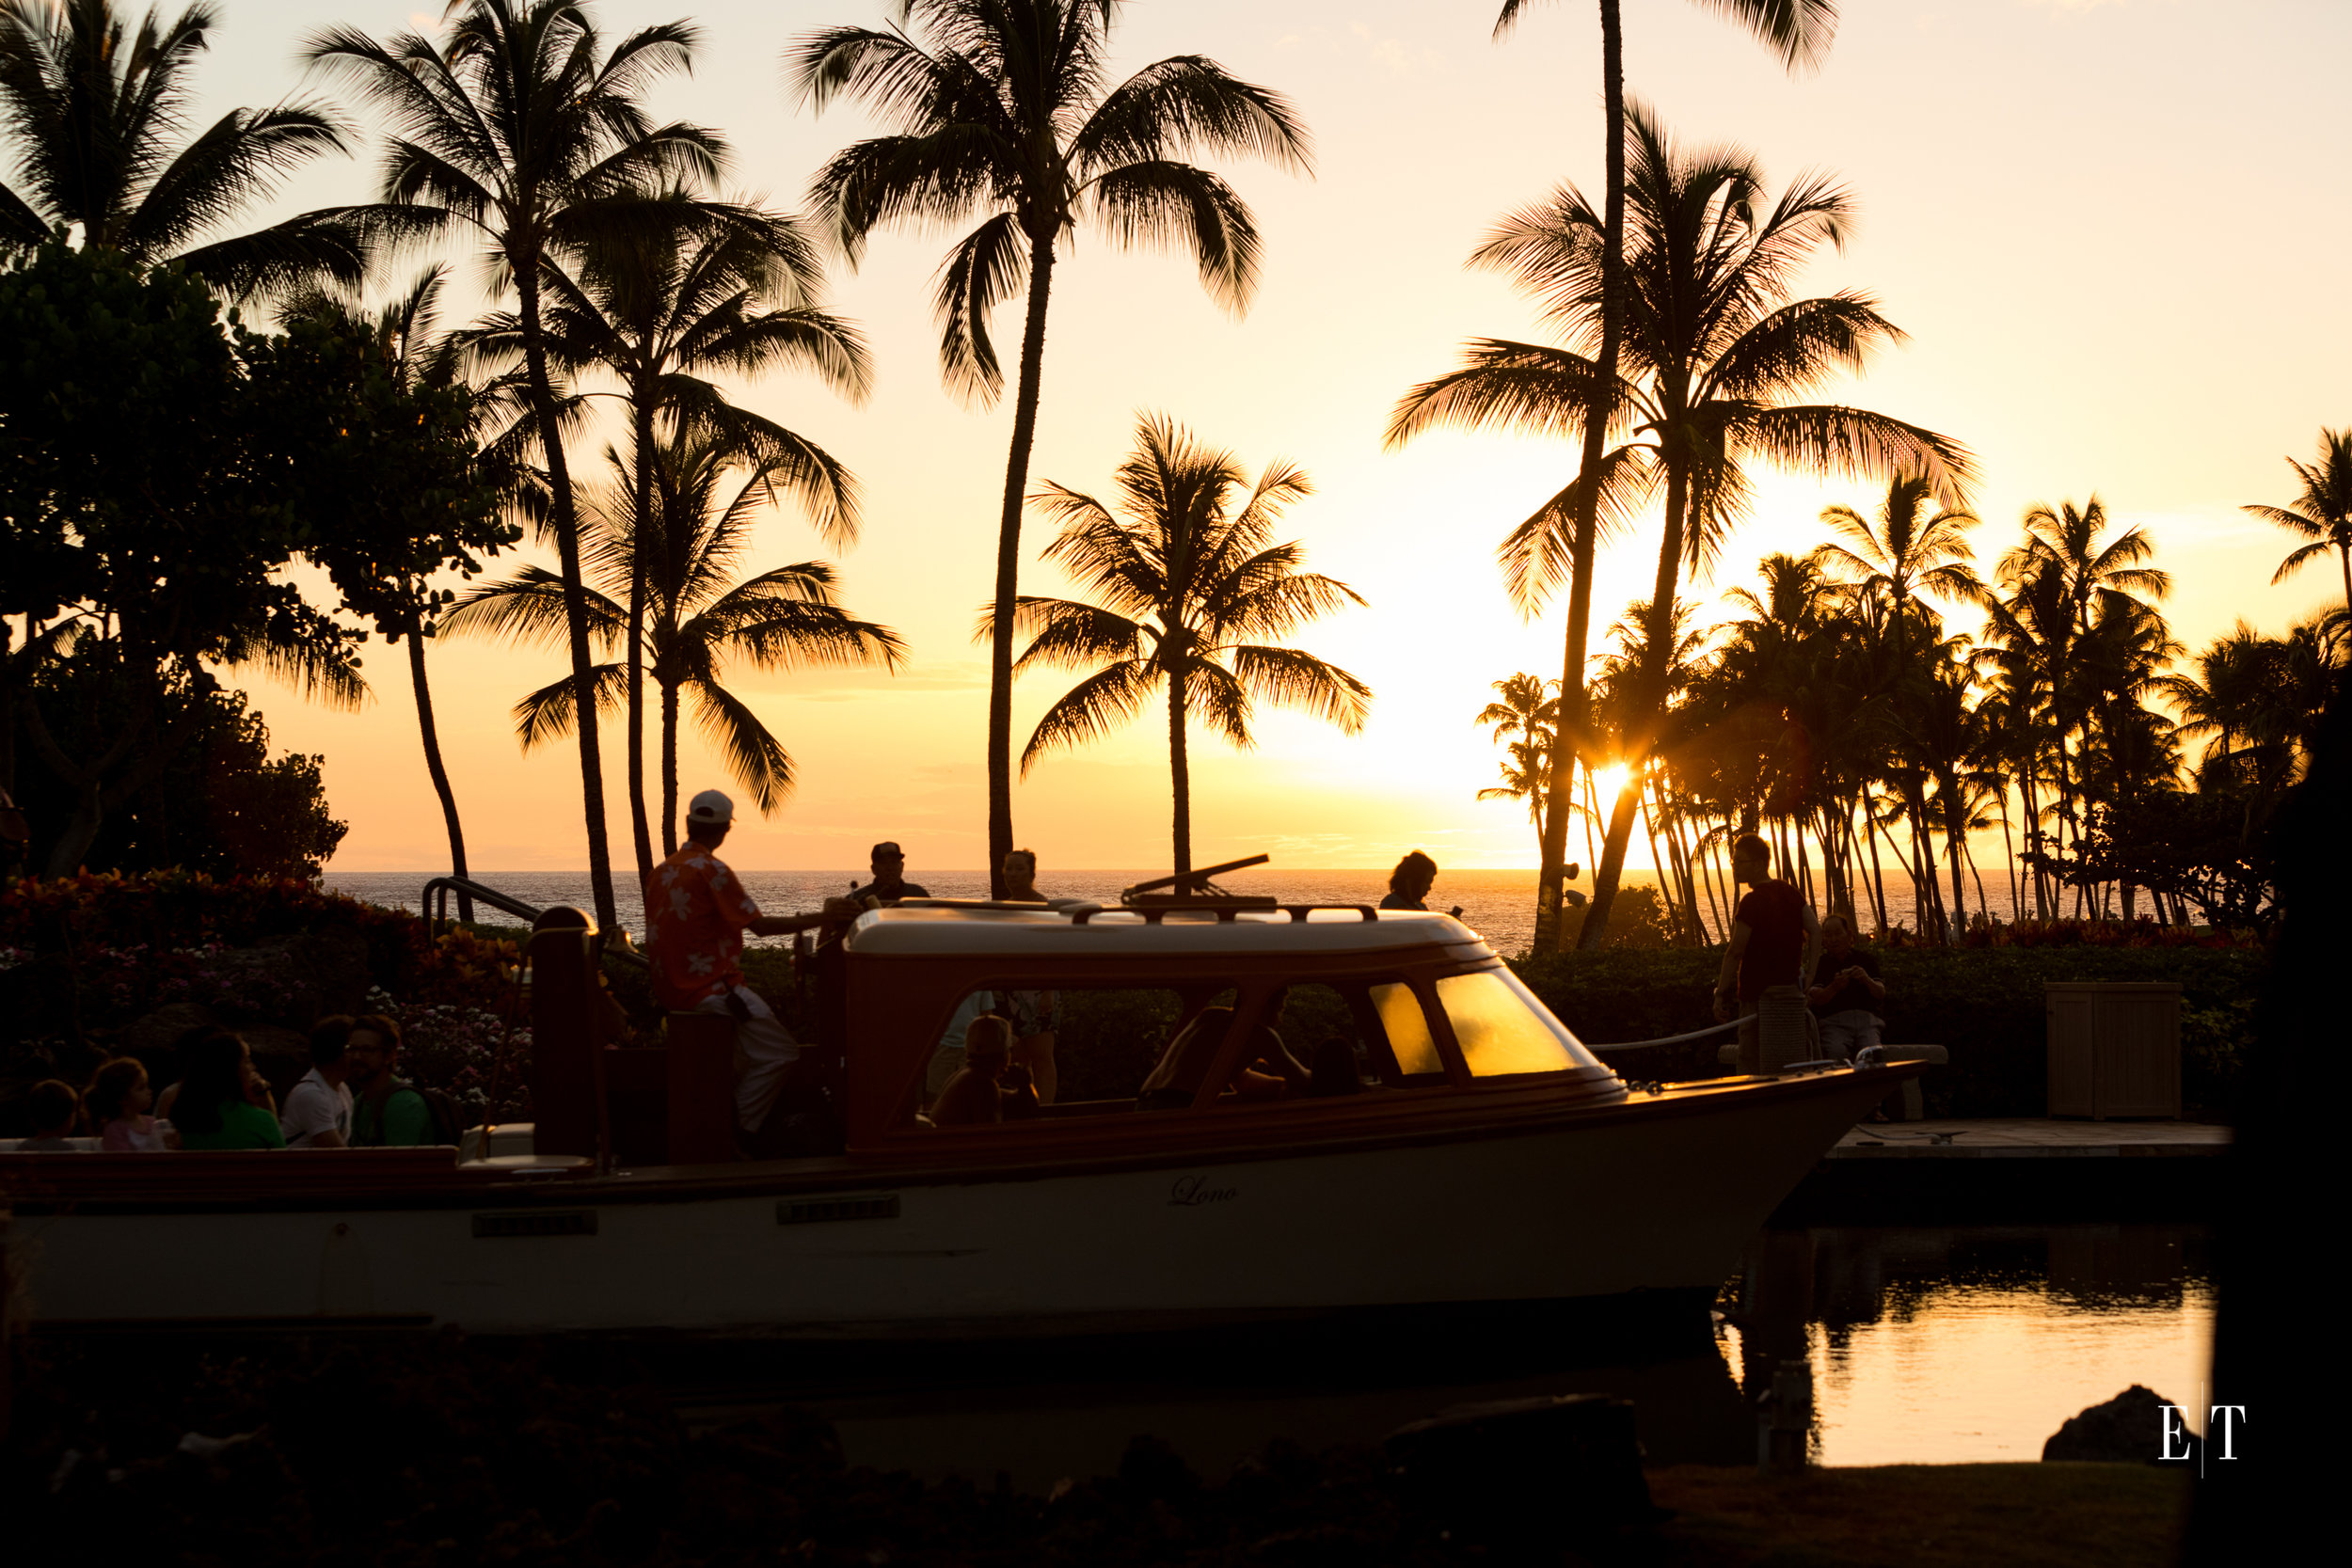 Hilton Waikoloa Village at sunset